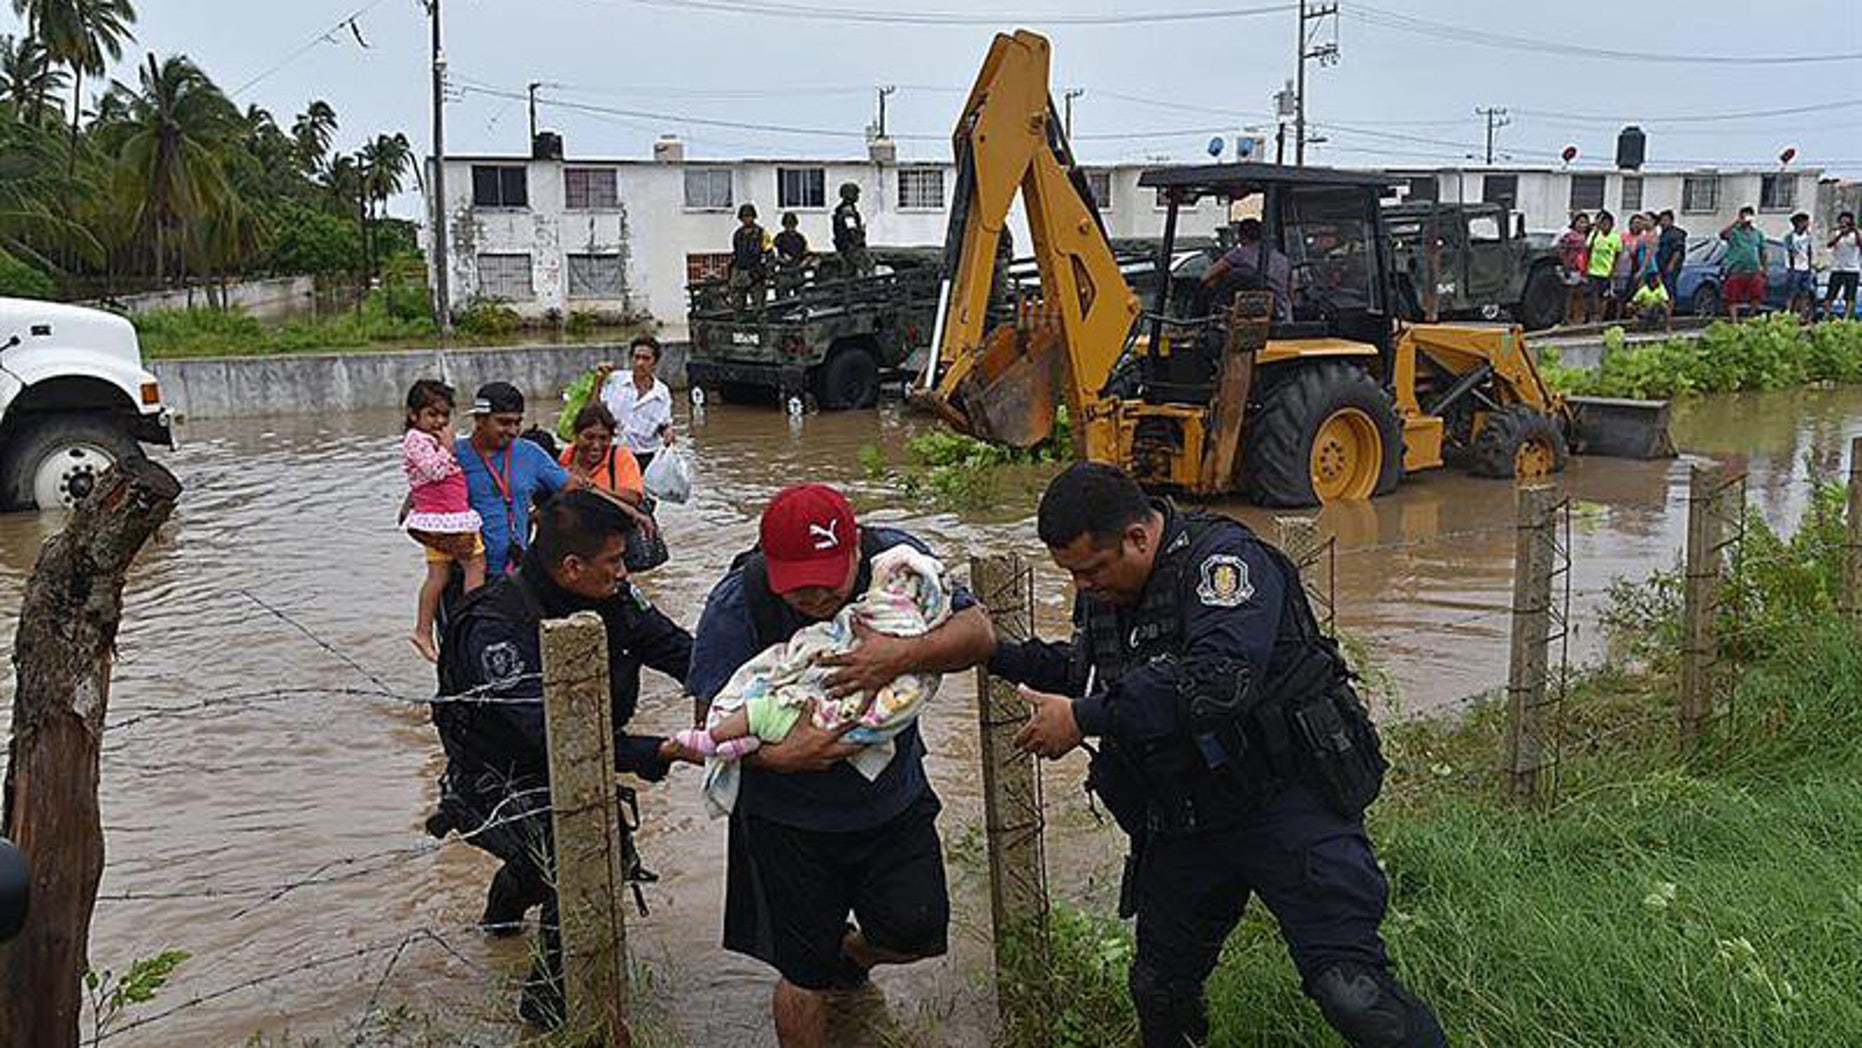 A handout photo released by Mexican news agency Quadratin shows people being evacuated by members Guerrero State Police after floods due heavy rains in the state of Guerrero, Mexico, 04 September 2016. EFE